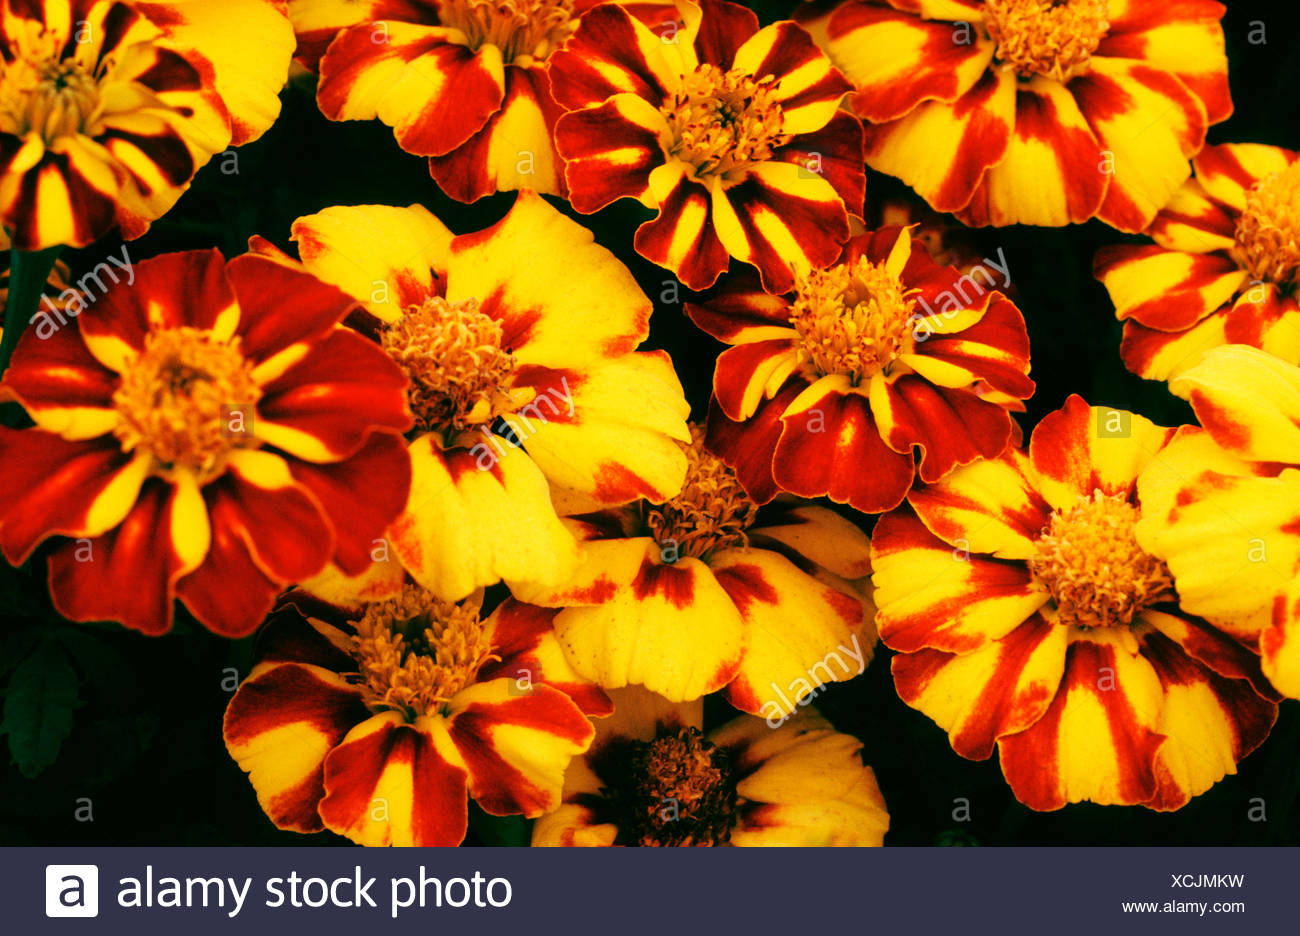 French marigold (Tagetes patula), cultivar Dainty Marietta - Stock Image